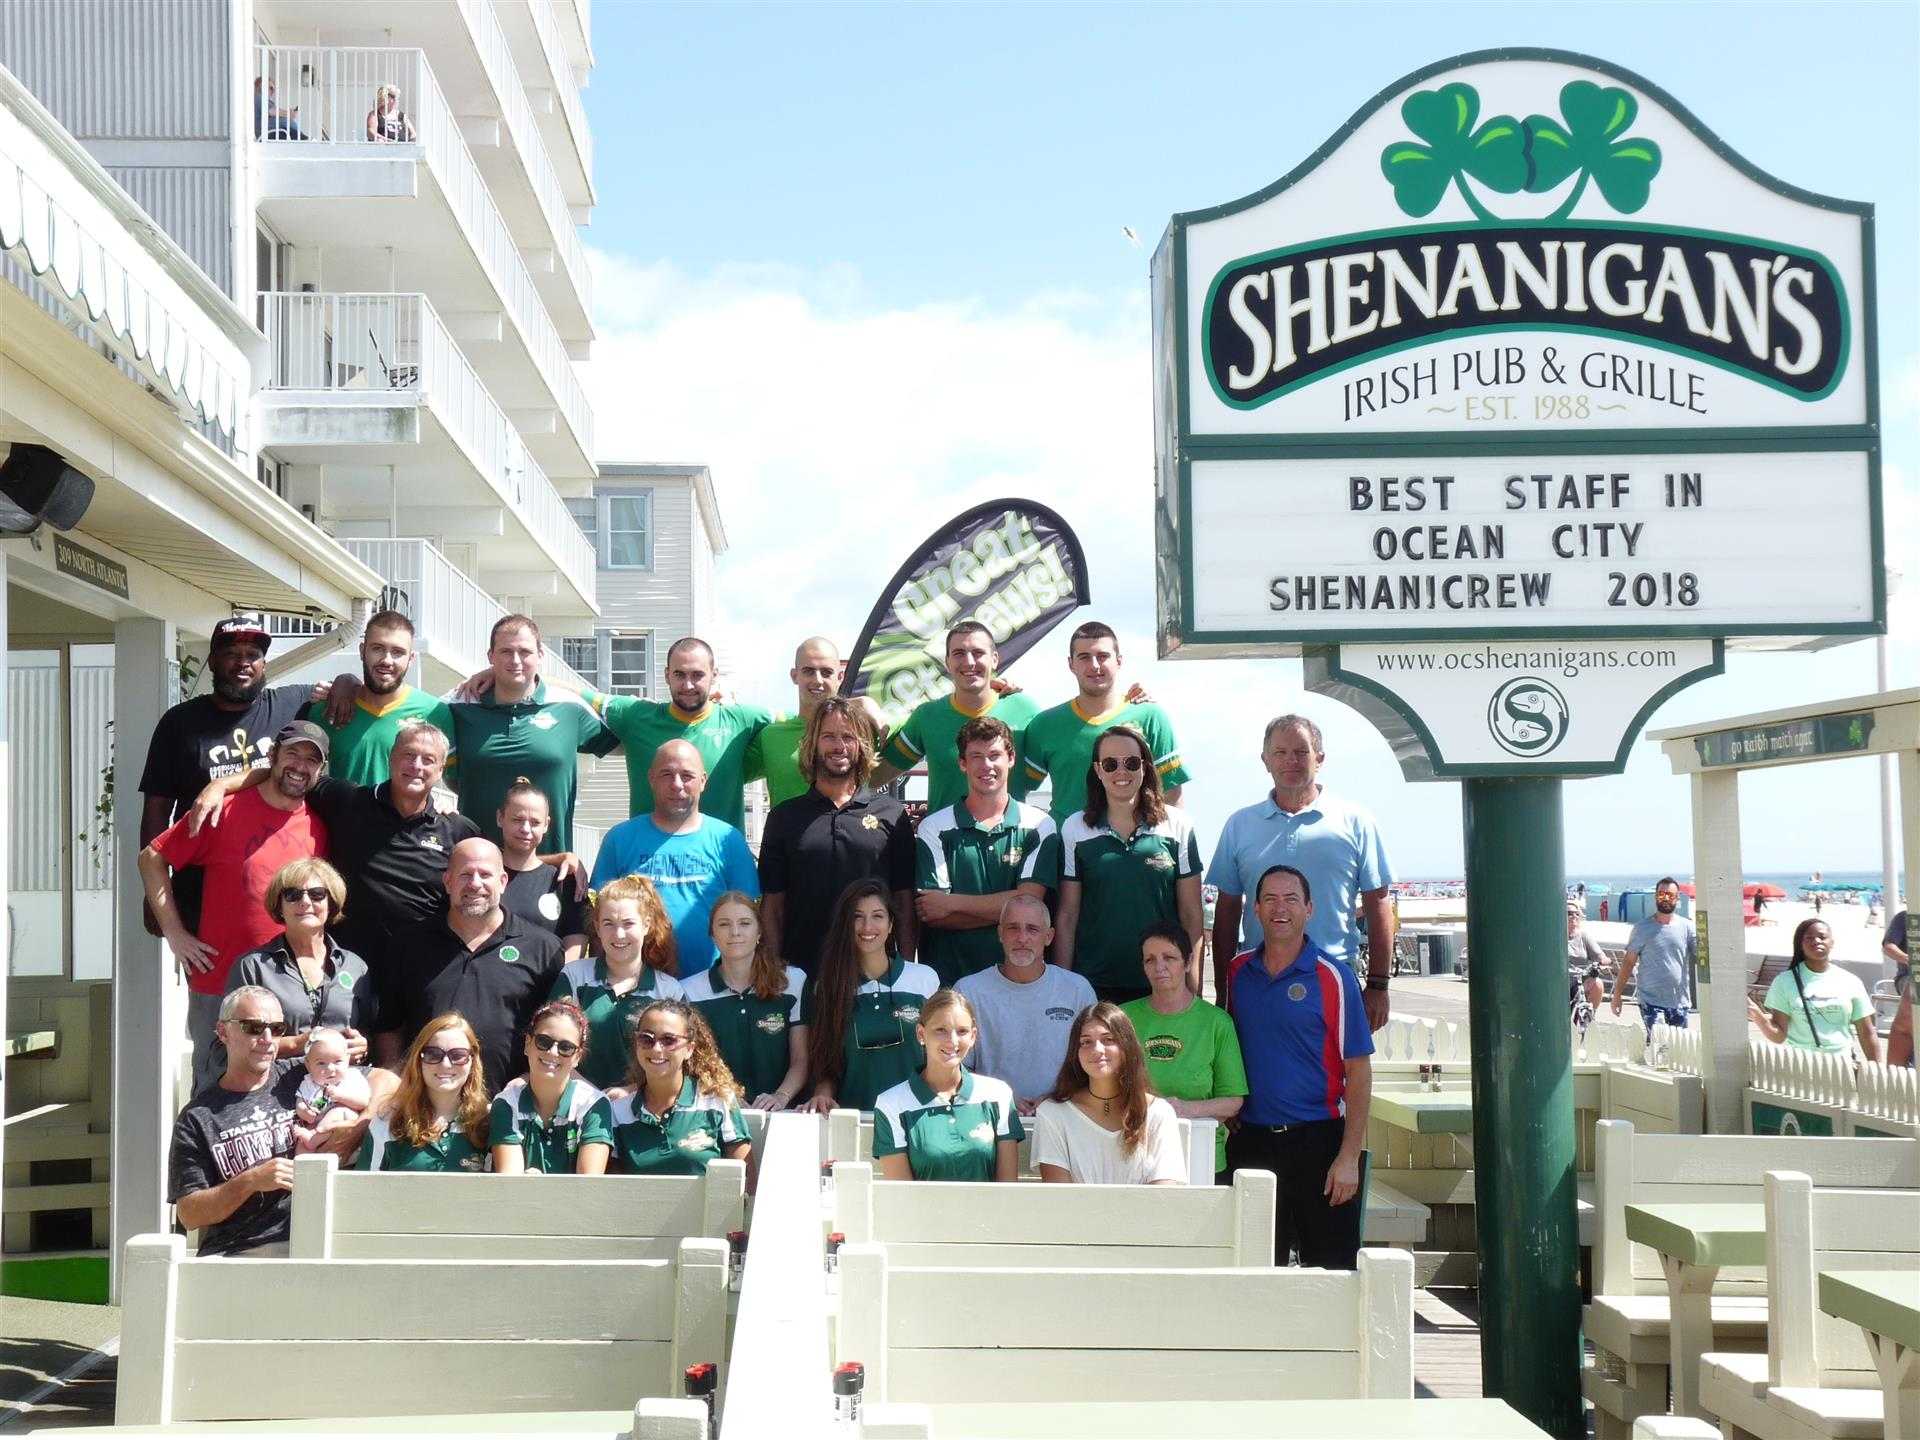 Staff of Shenanigans group photo outside on the boardwalk by the Shenanigan's sign.